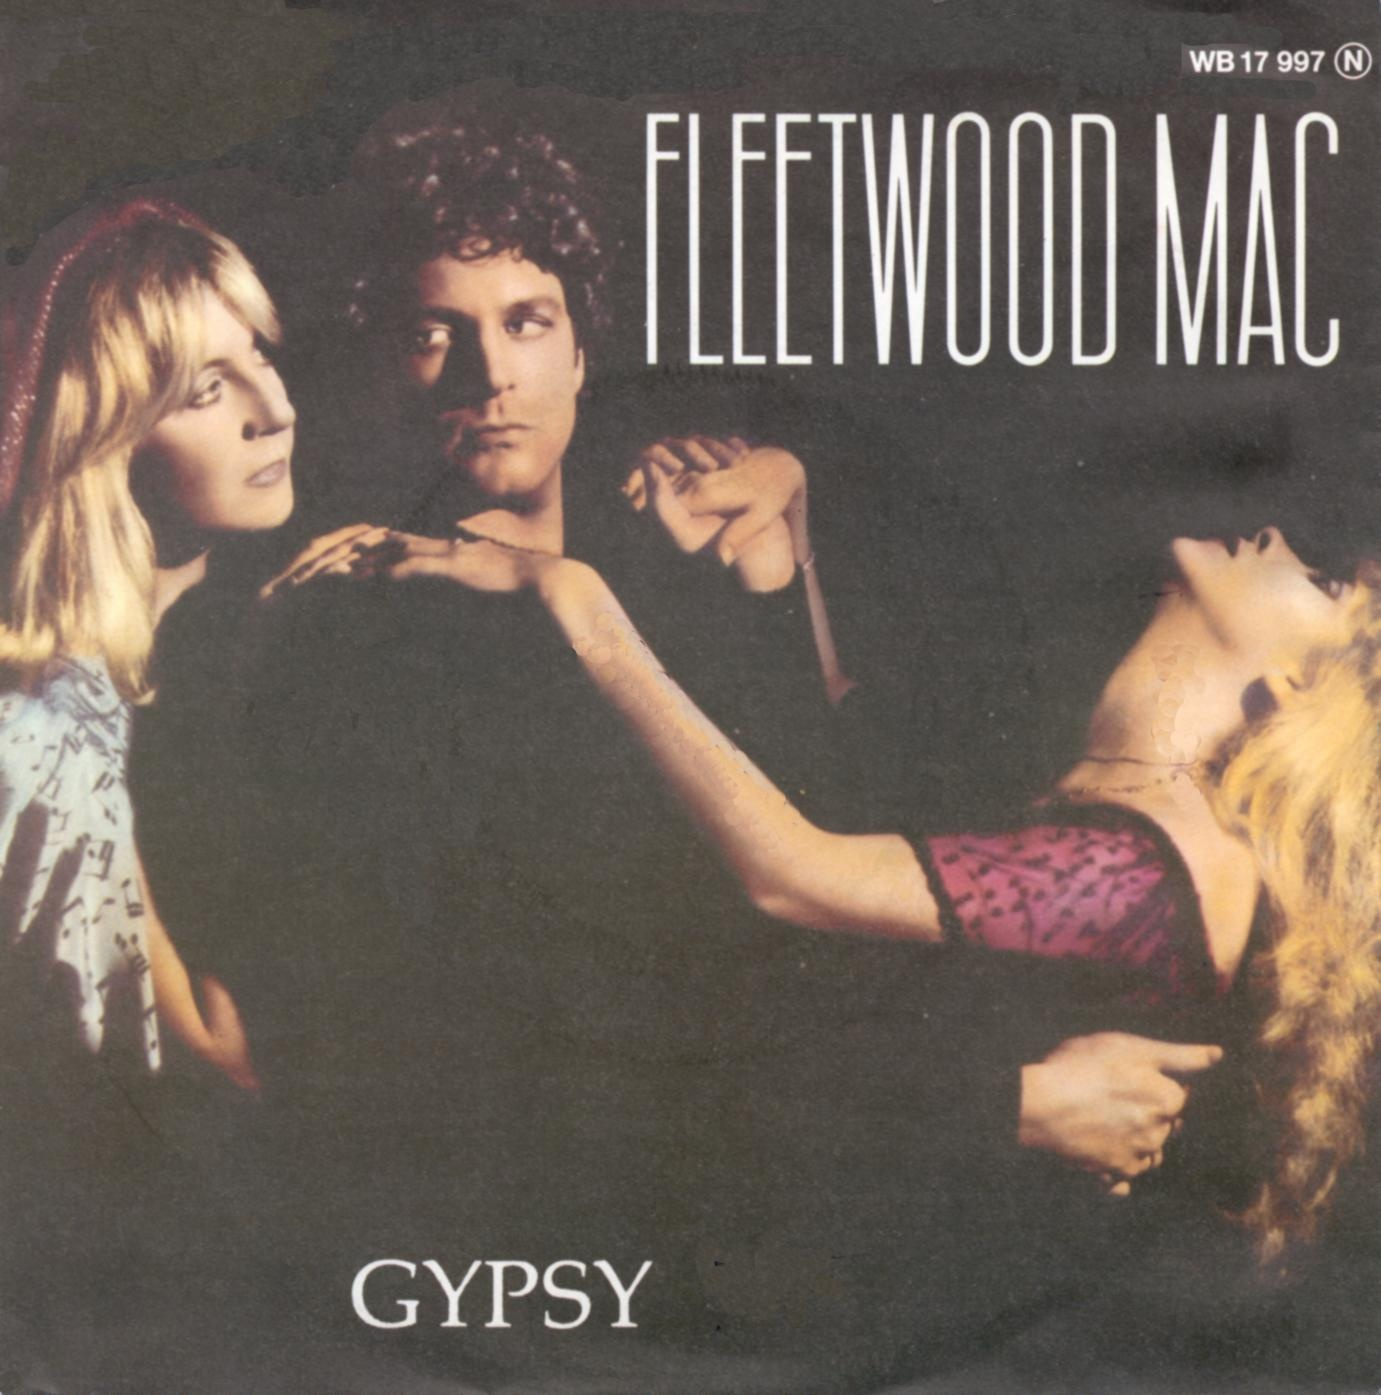 Gypsy (Foto: Fleetwood Mac)